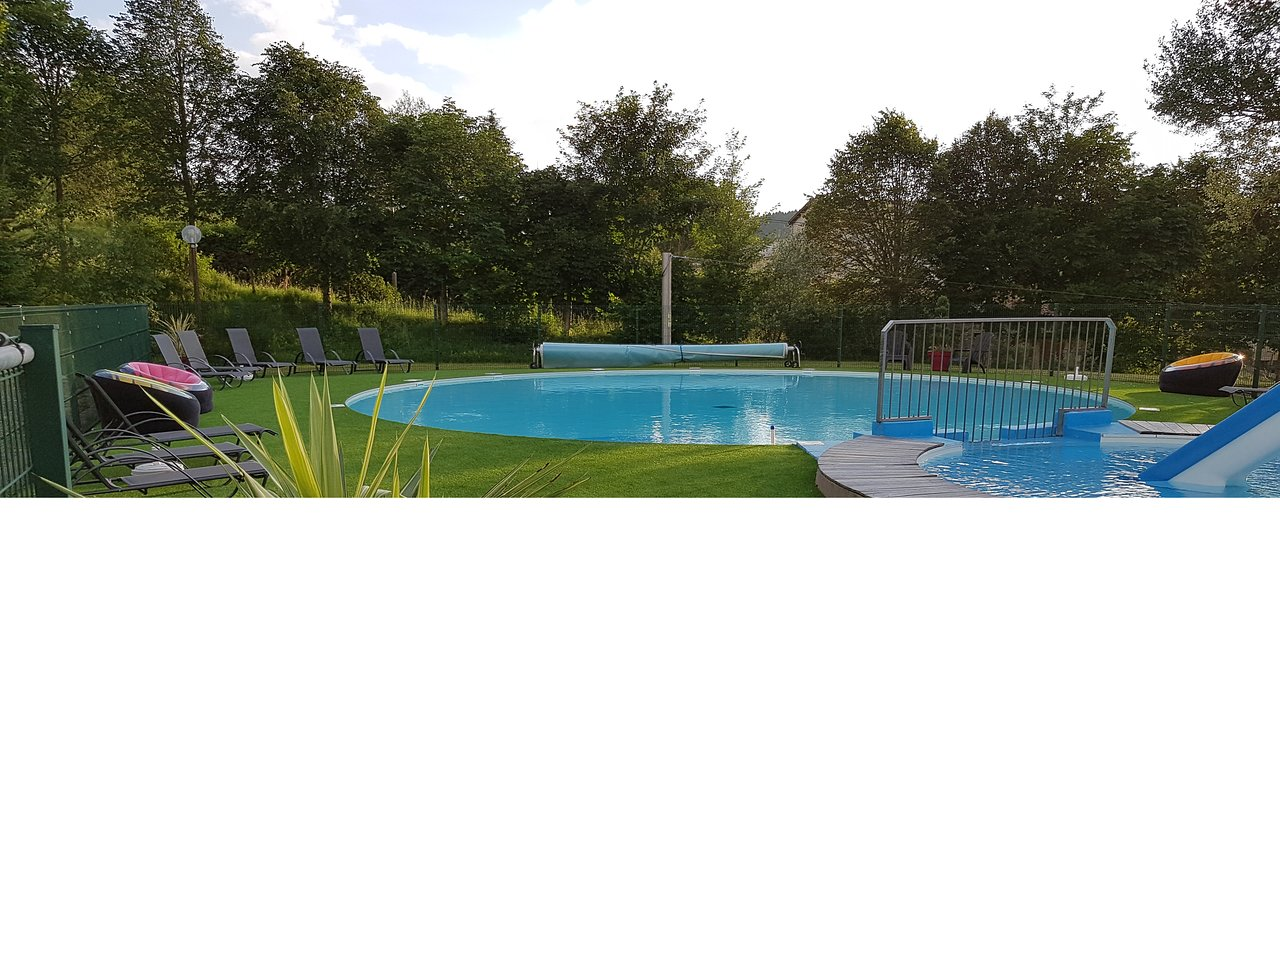 Camping La Chaise Dieu Camping Le St Eloy Saint Germain L Herm France Campground